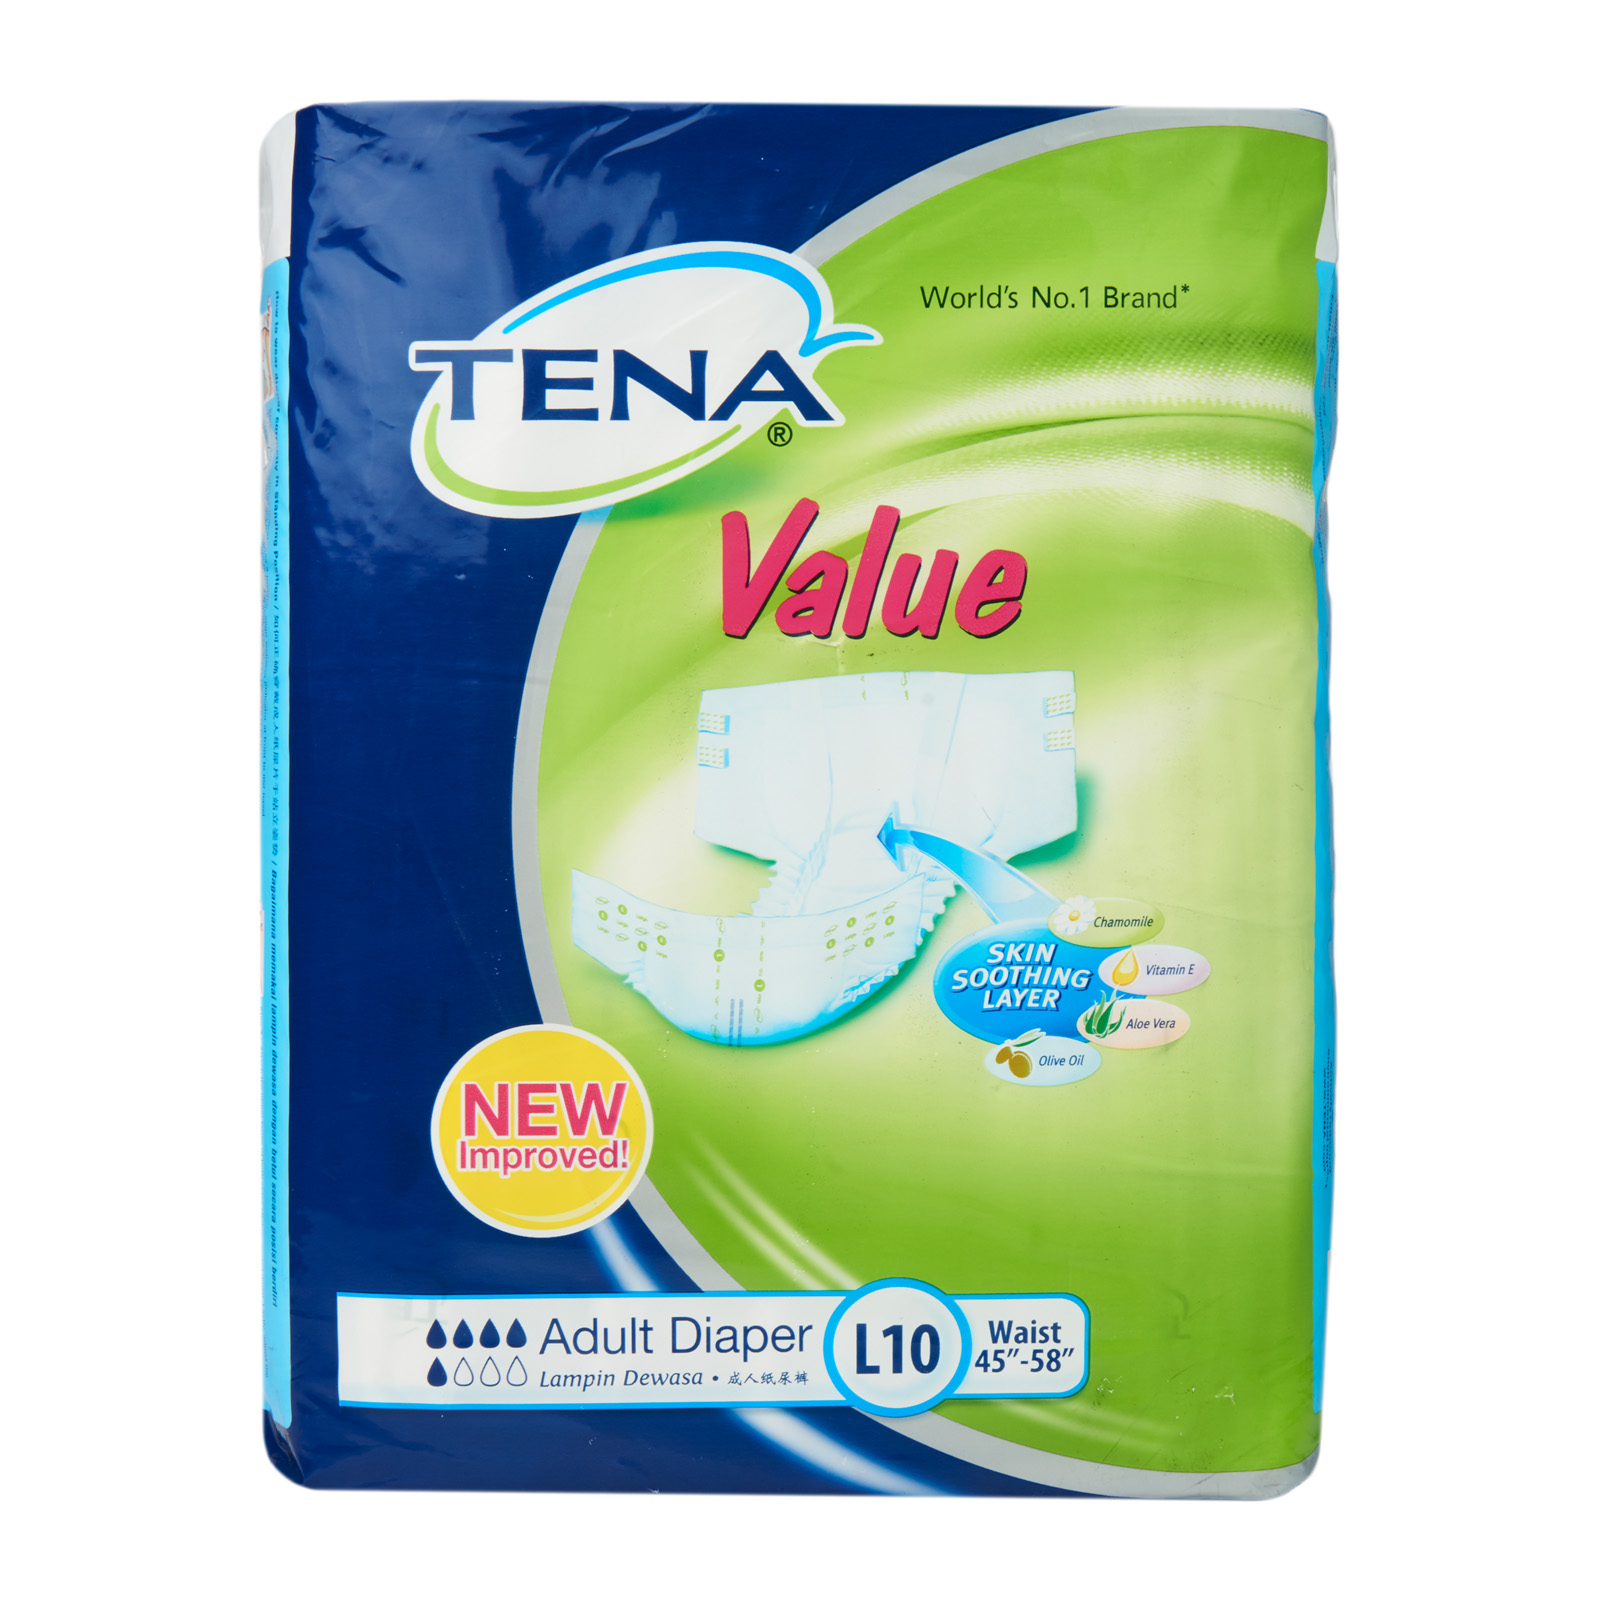 Adult diaper tena what